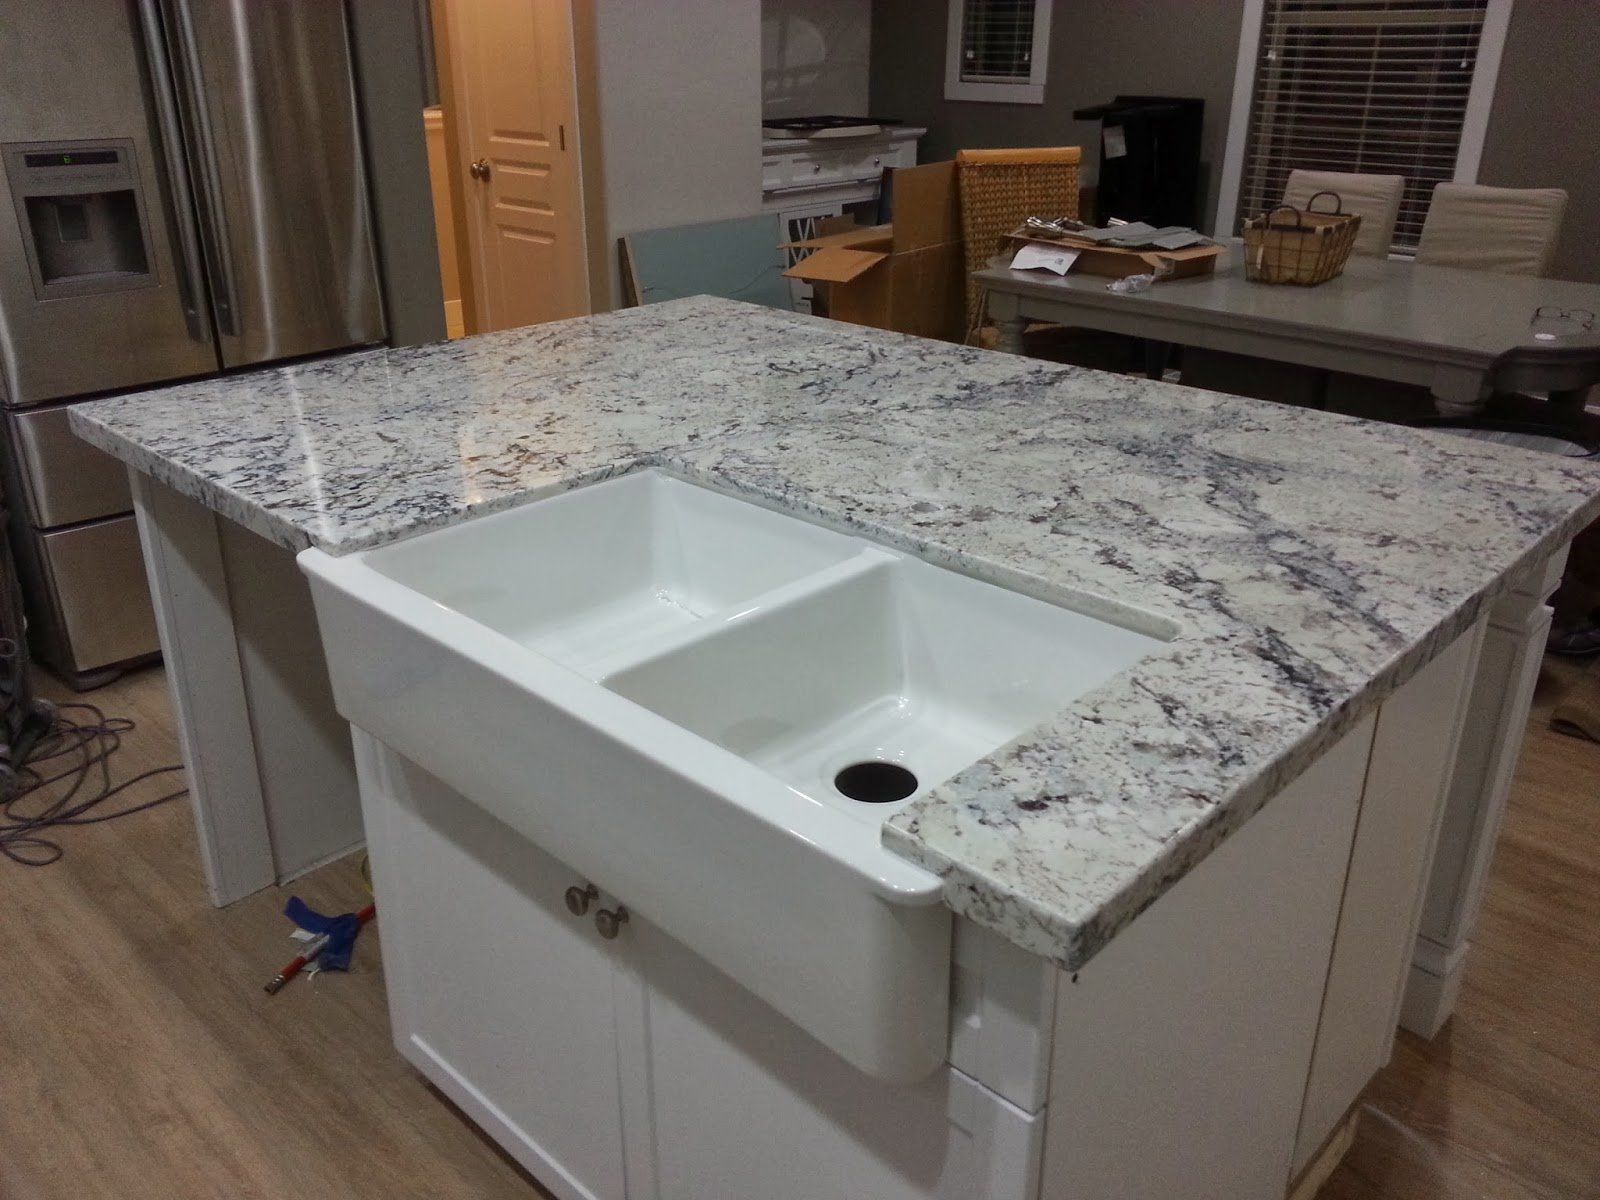 Granite Countertops Pros And Cons Adorable Grey With Pencil Edges Countertop Tiles Labels S Interior